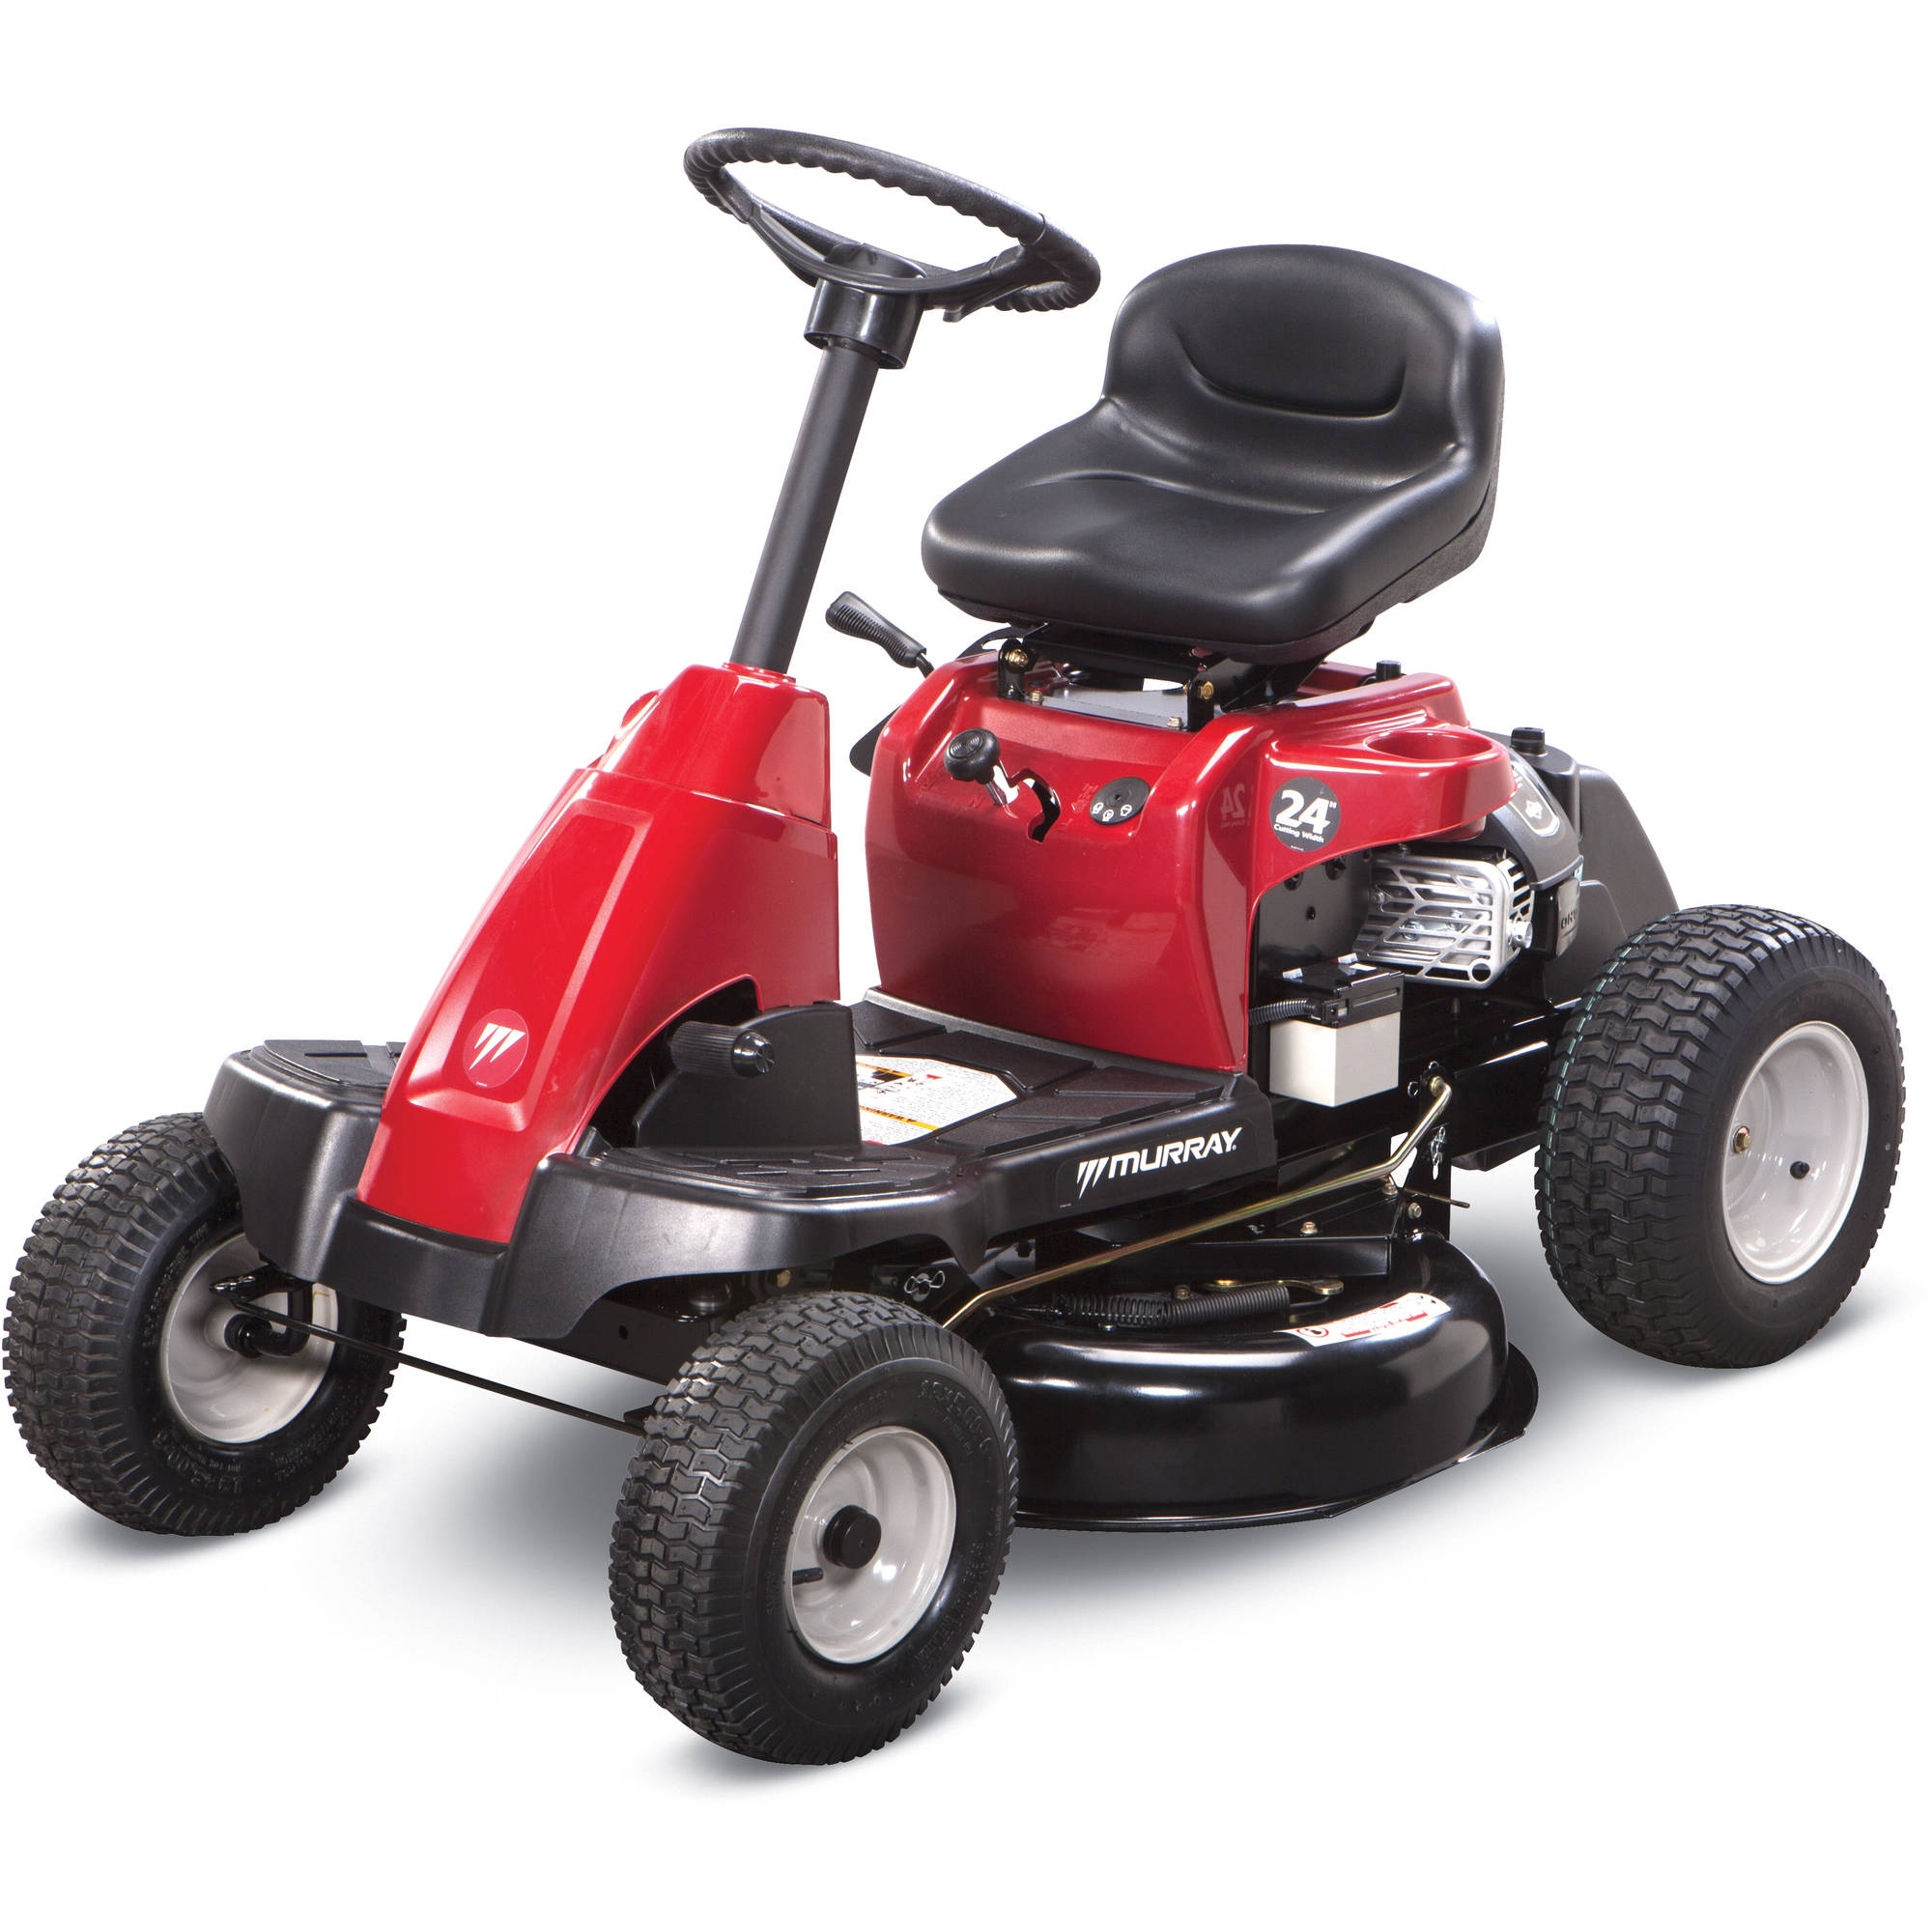 hight resolution of murray 24 rear engine riding mower with mulch kit walmart com murray rider wiring harness